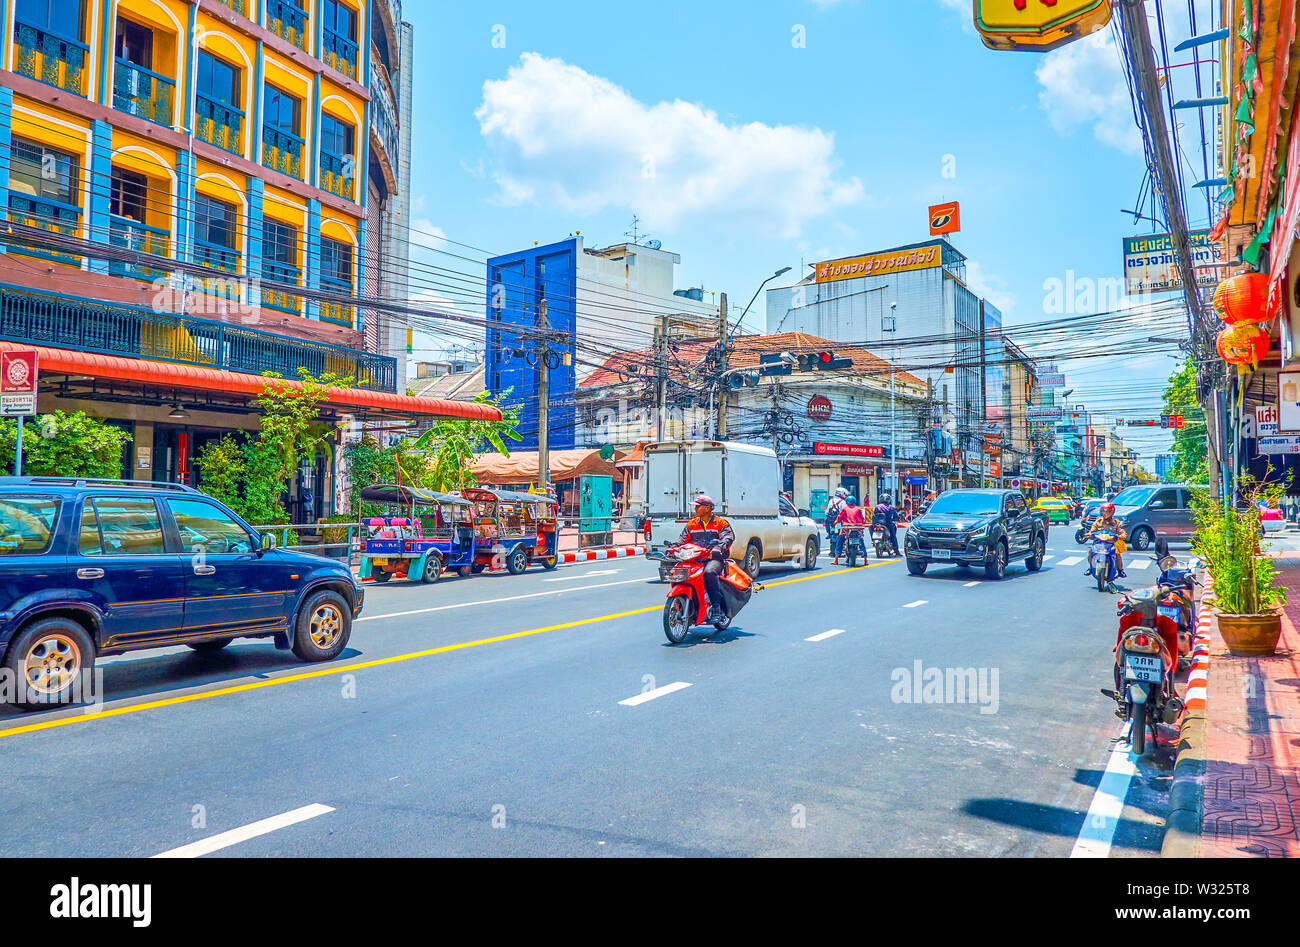 BANGKOK, THAILAND - APRIL 22, 2019: The urban scene of the central part of the city with riding cars in Phra Sumen Road, on April 22 in Bangkok - Stock Image